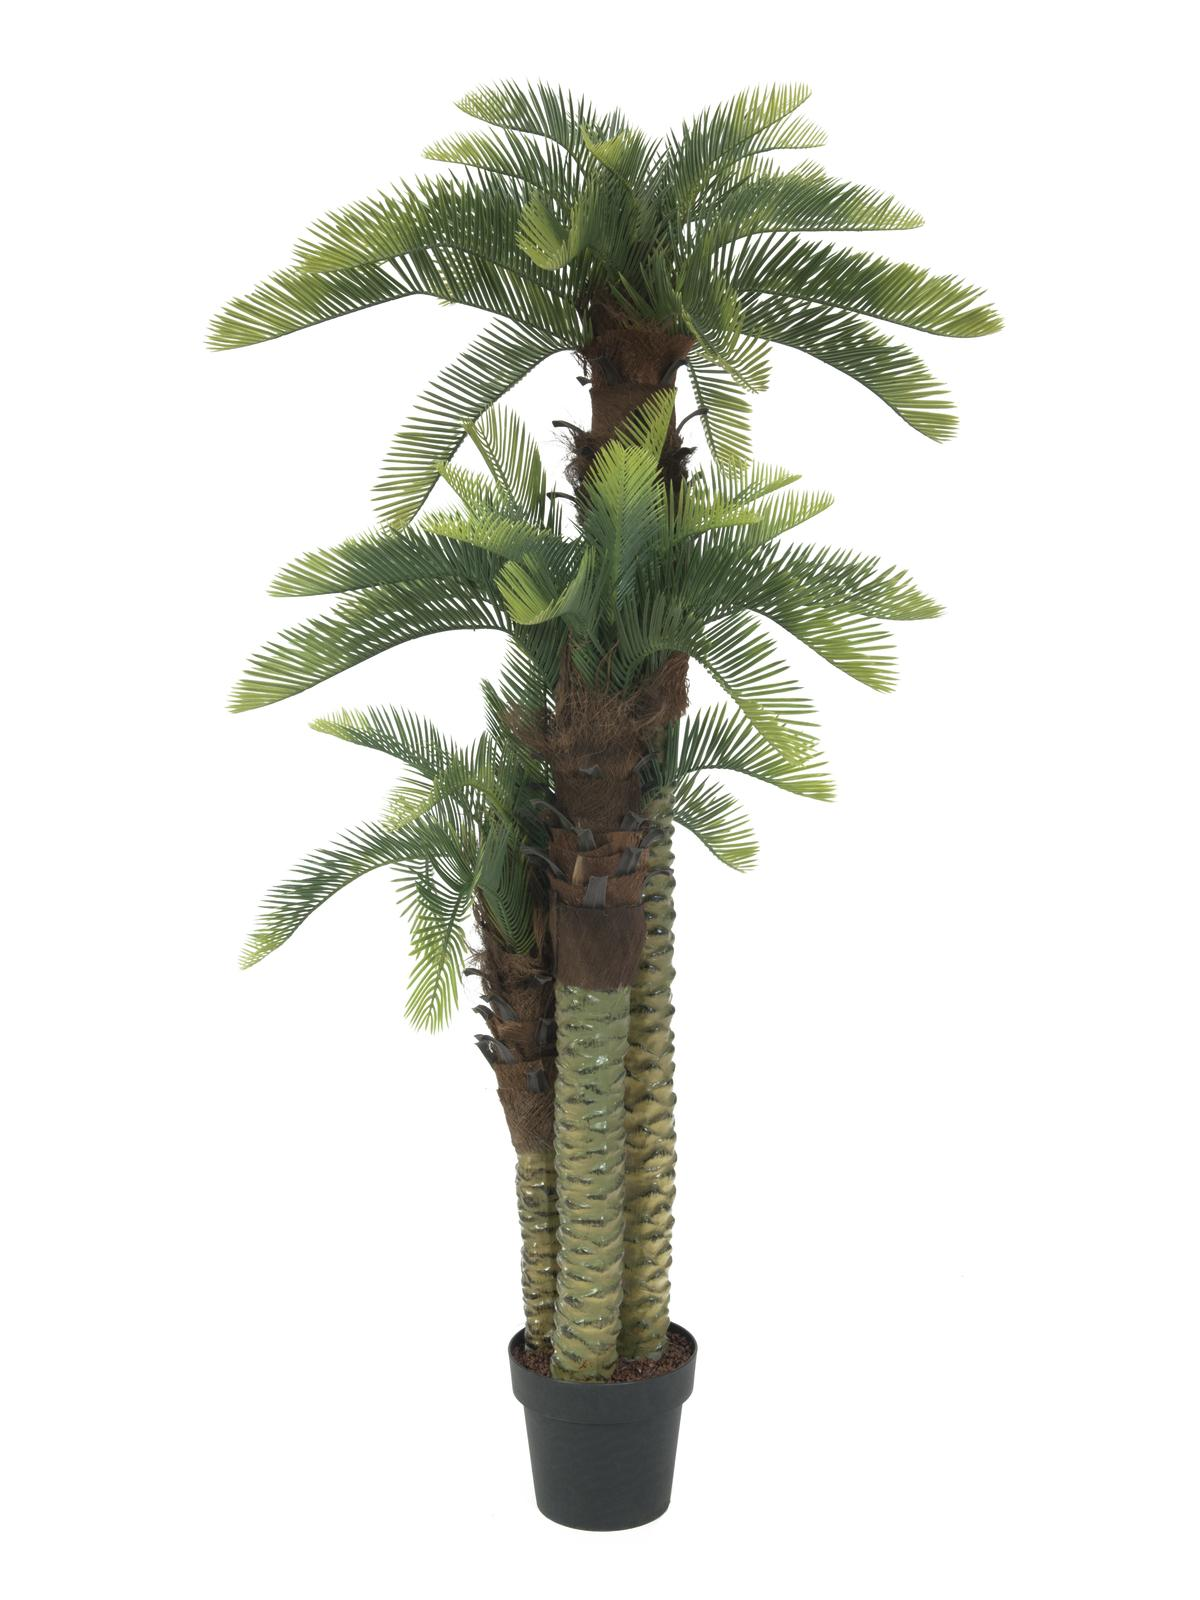 EUROPALMS pianta artificiale Cycas palma, 150cm